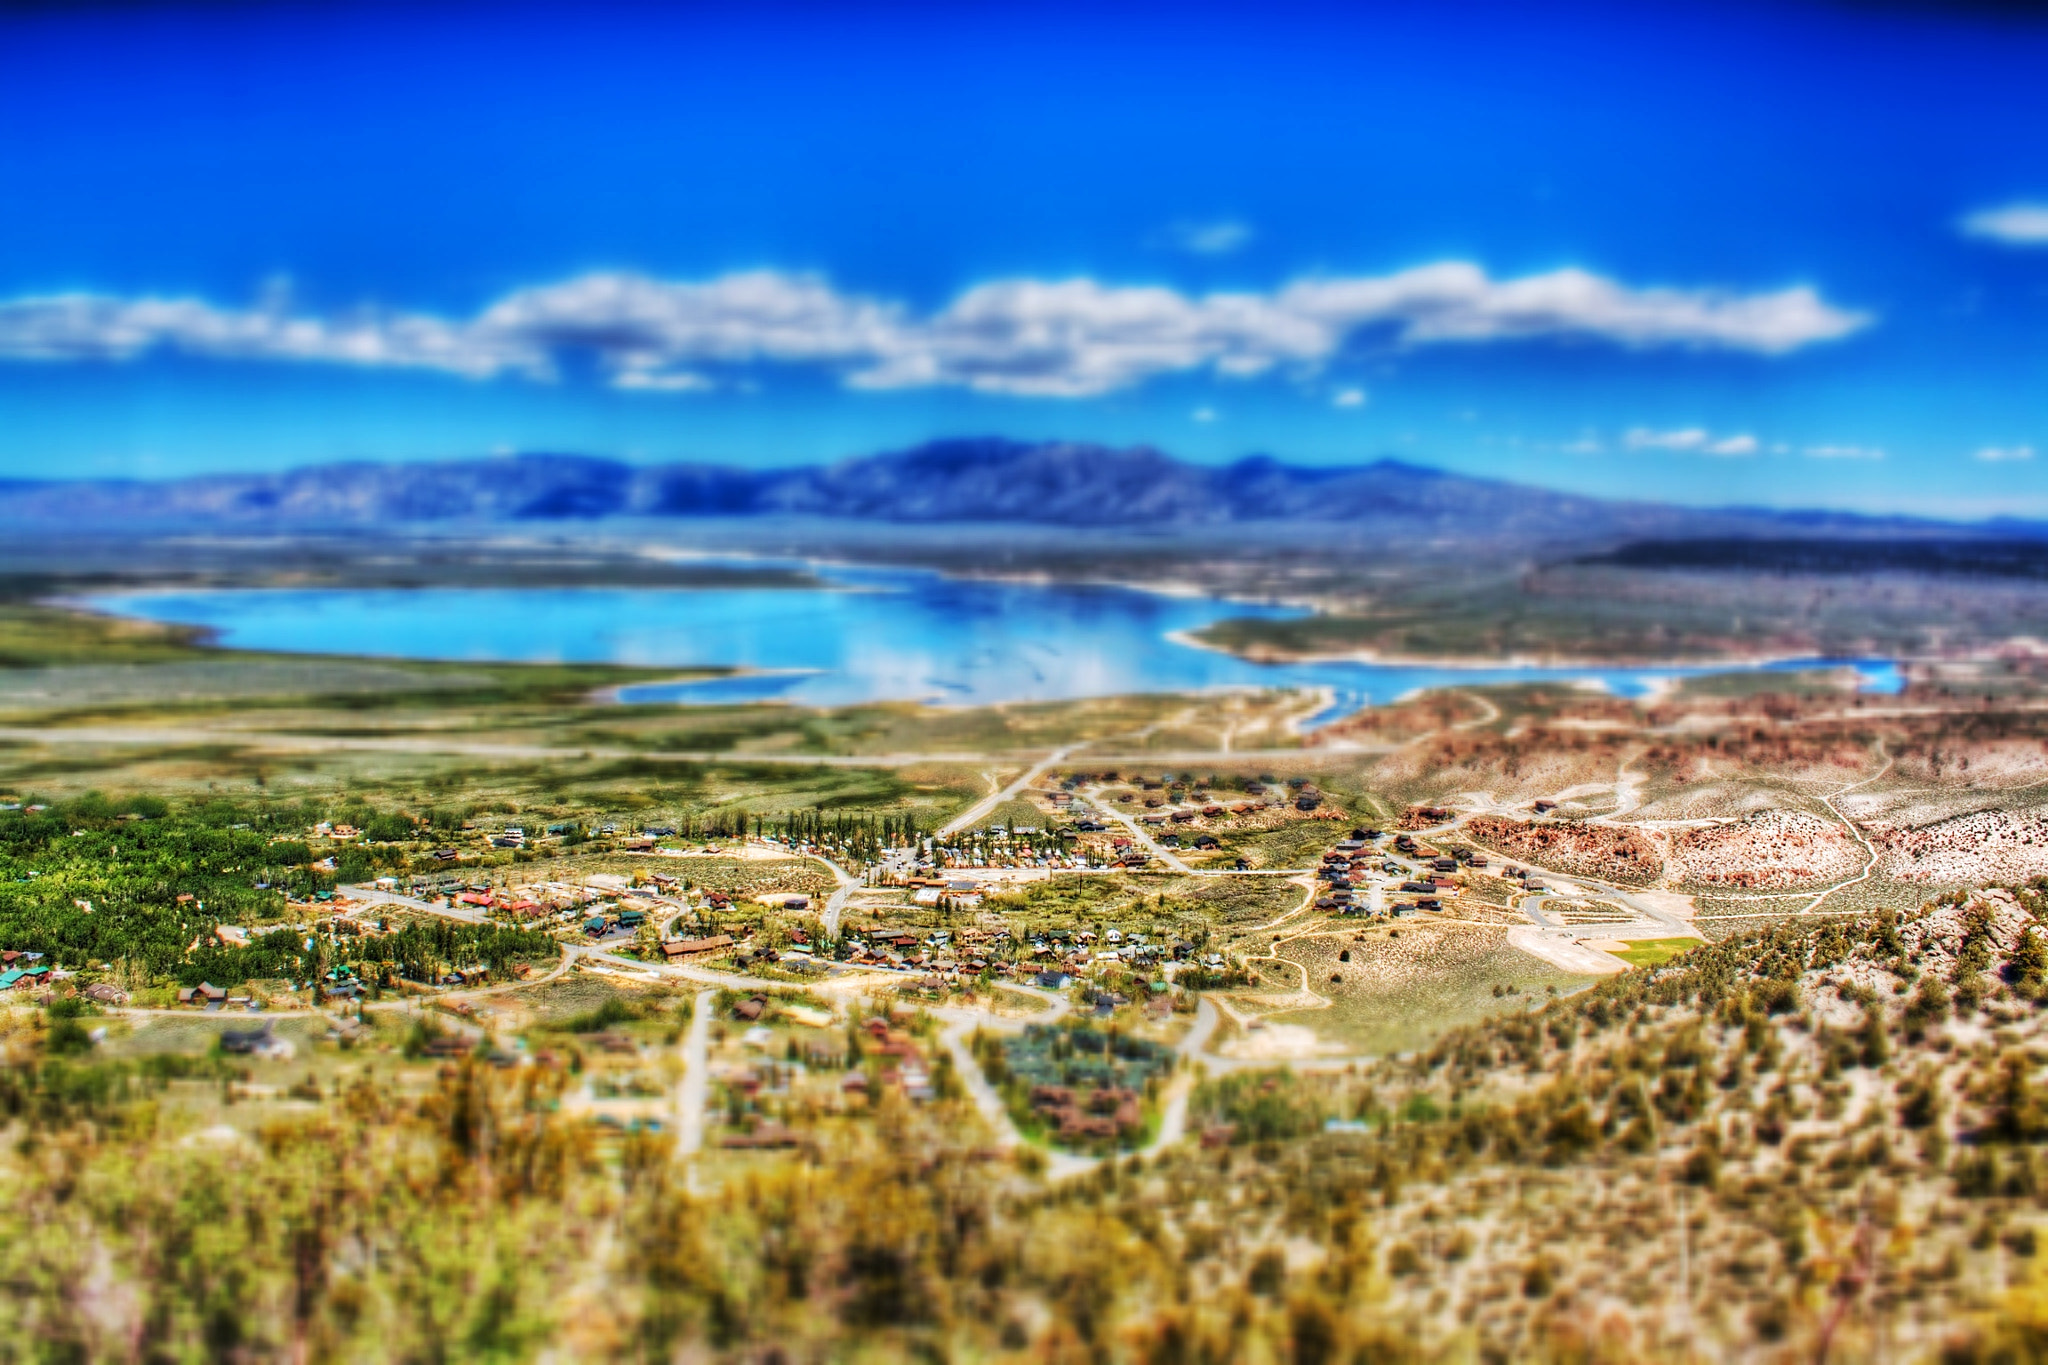 Photograph Crowley Lake in Miniature by Jacob Penderworth on 500px